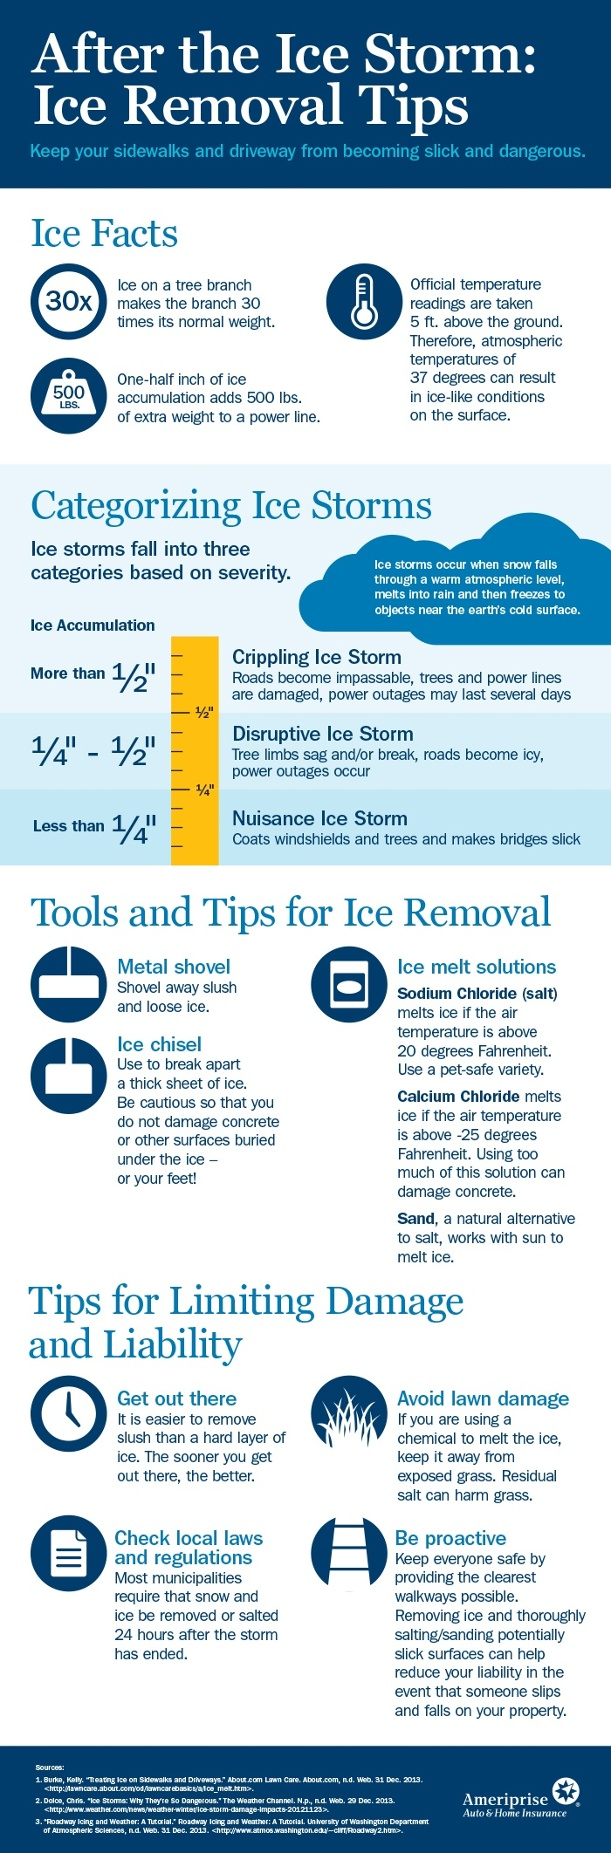 Ice-Removal-Tips_Infographic.jpg